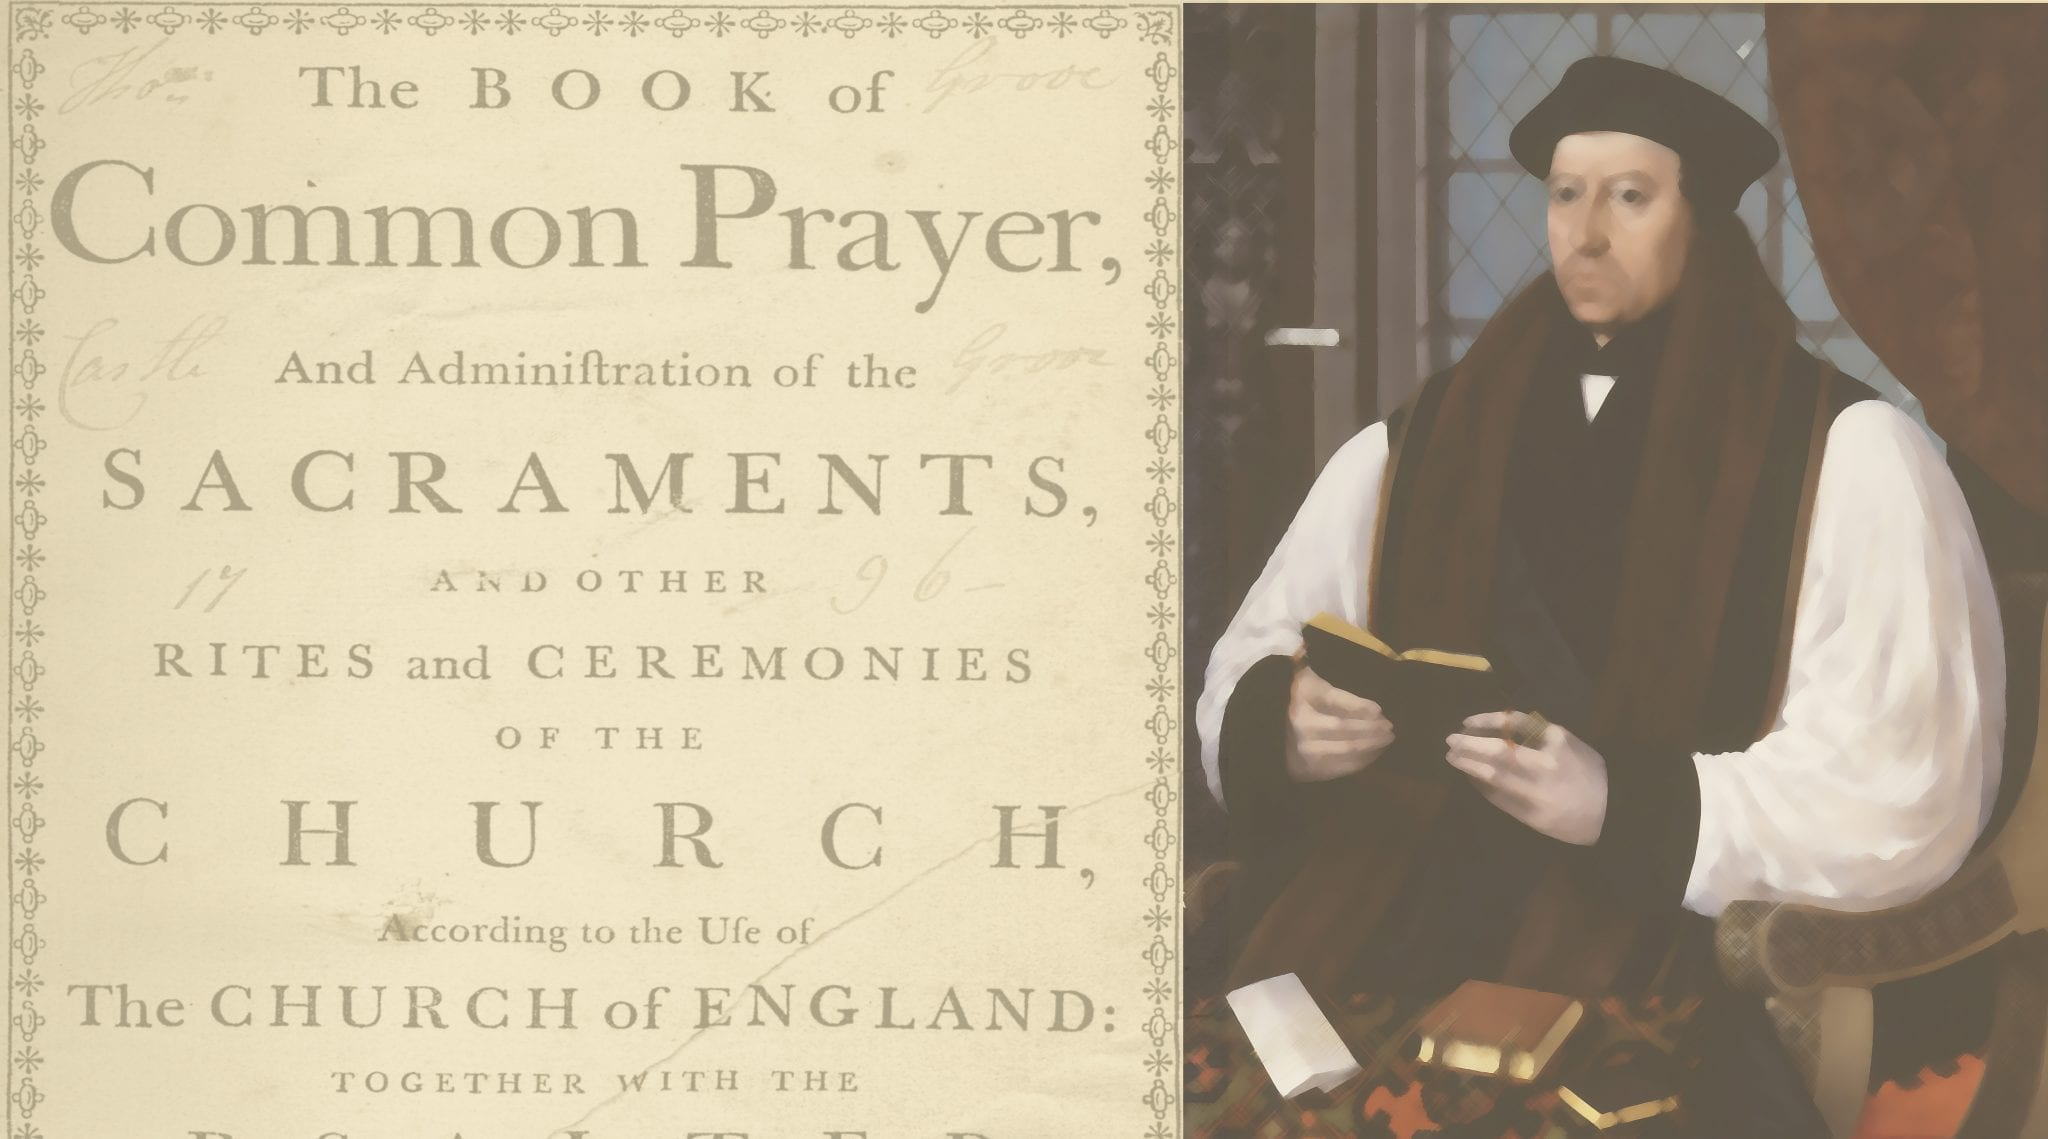 Common Prayer: The Origin Story